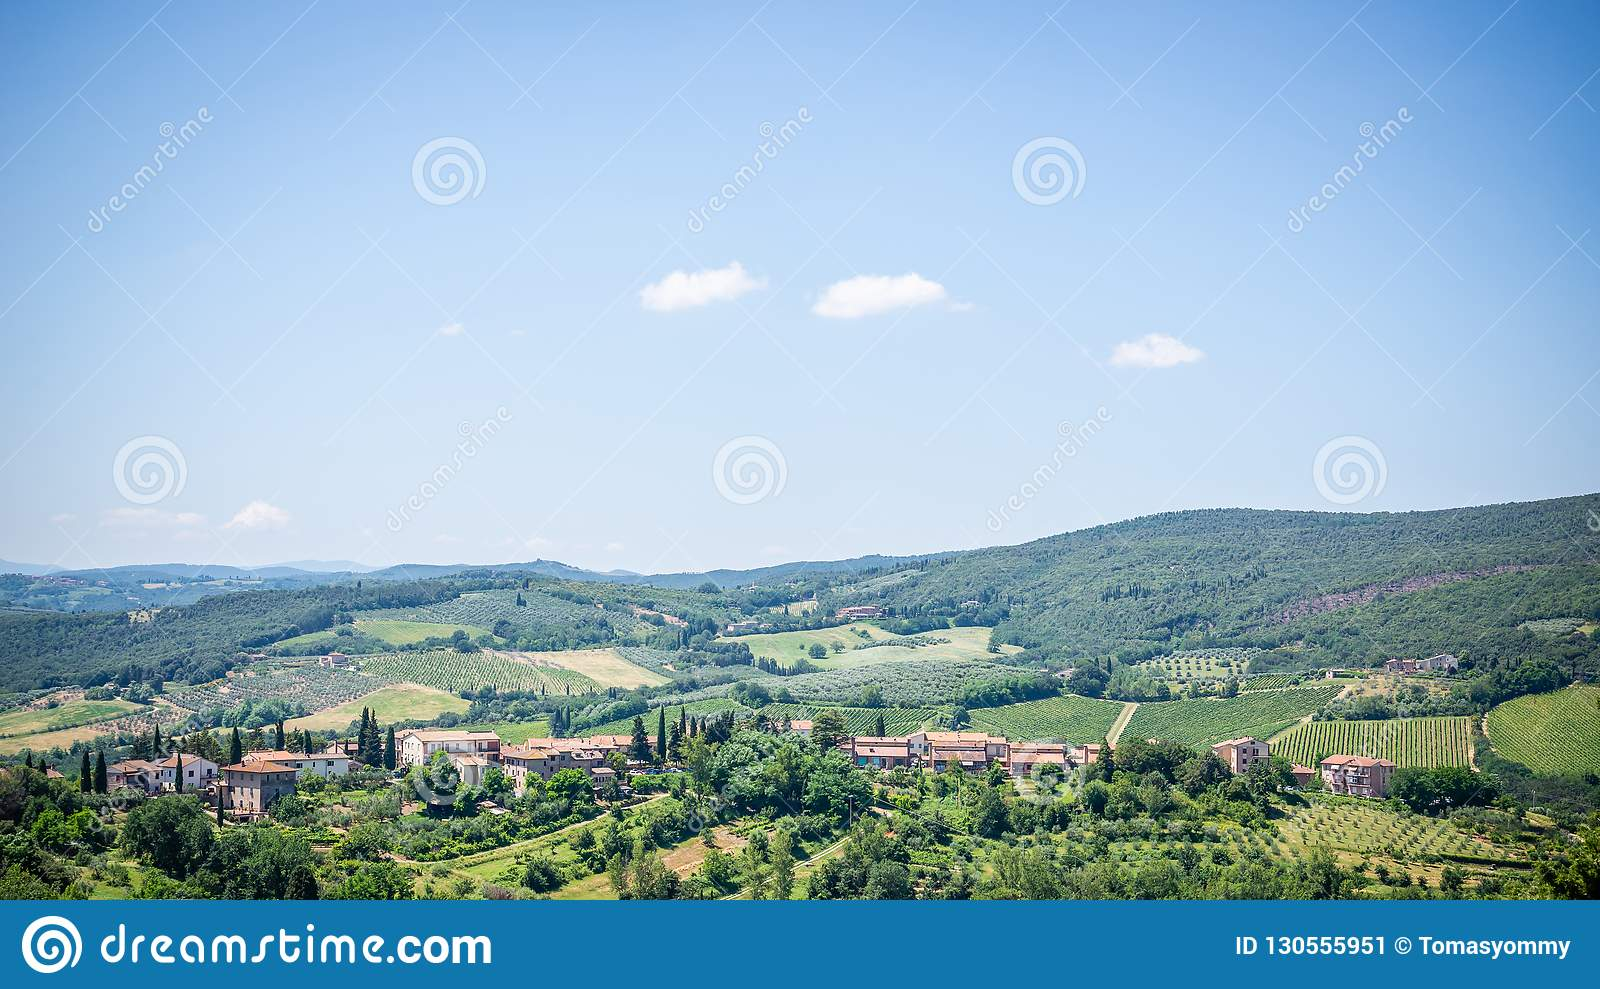 View to country near the town in Tuscany with lot of trees and buildings